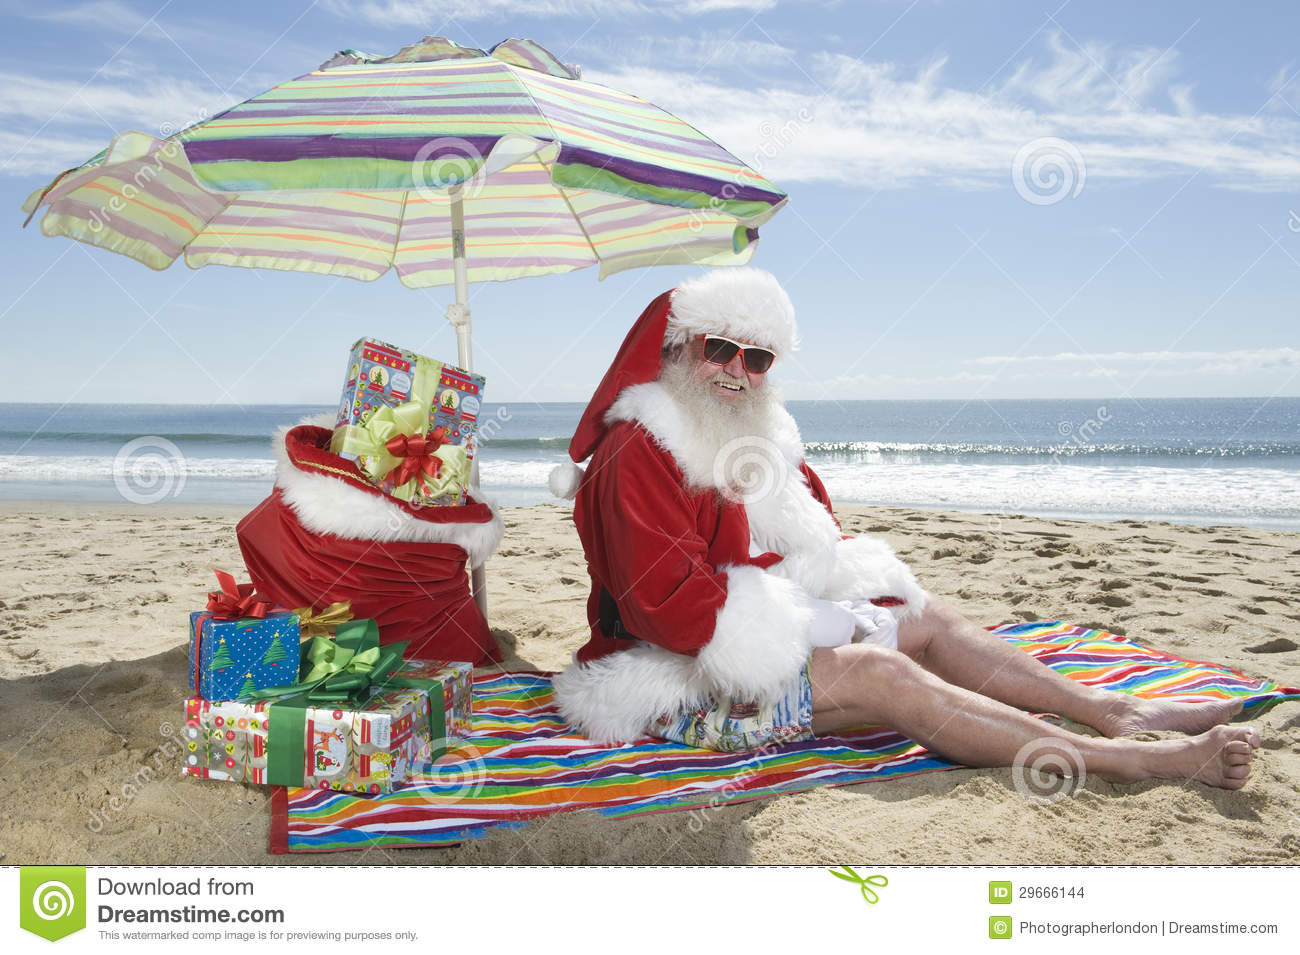 Santa claus sitting under parasol with gifts on beach stock photo santa claus sitting under parasol with gifts on beach jeuxipadfo Choice Image